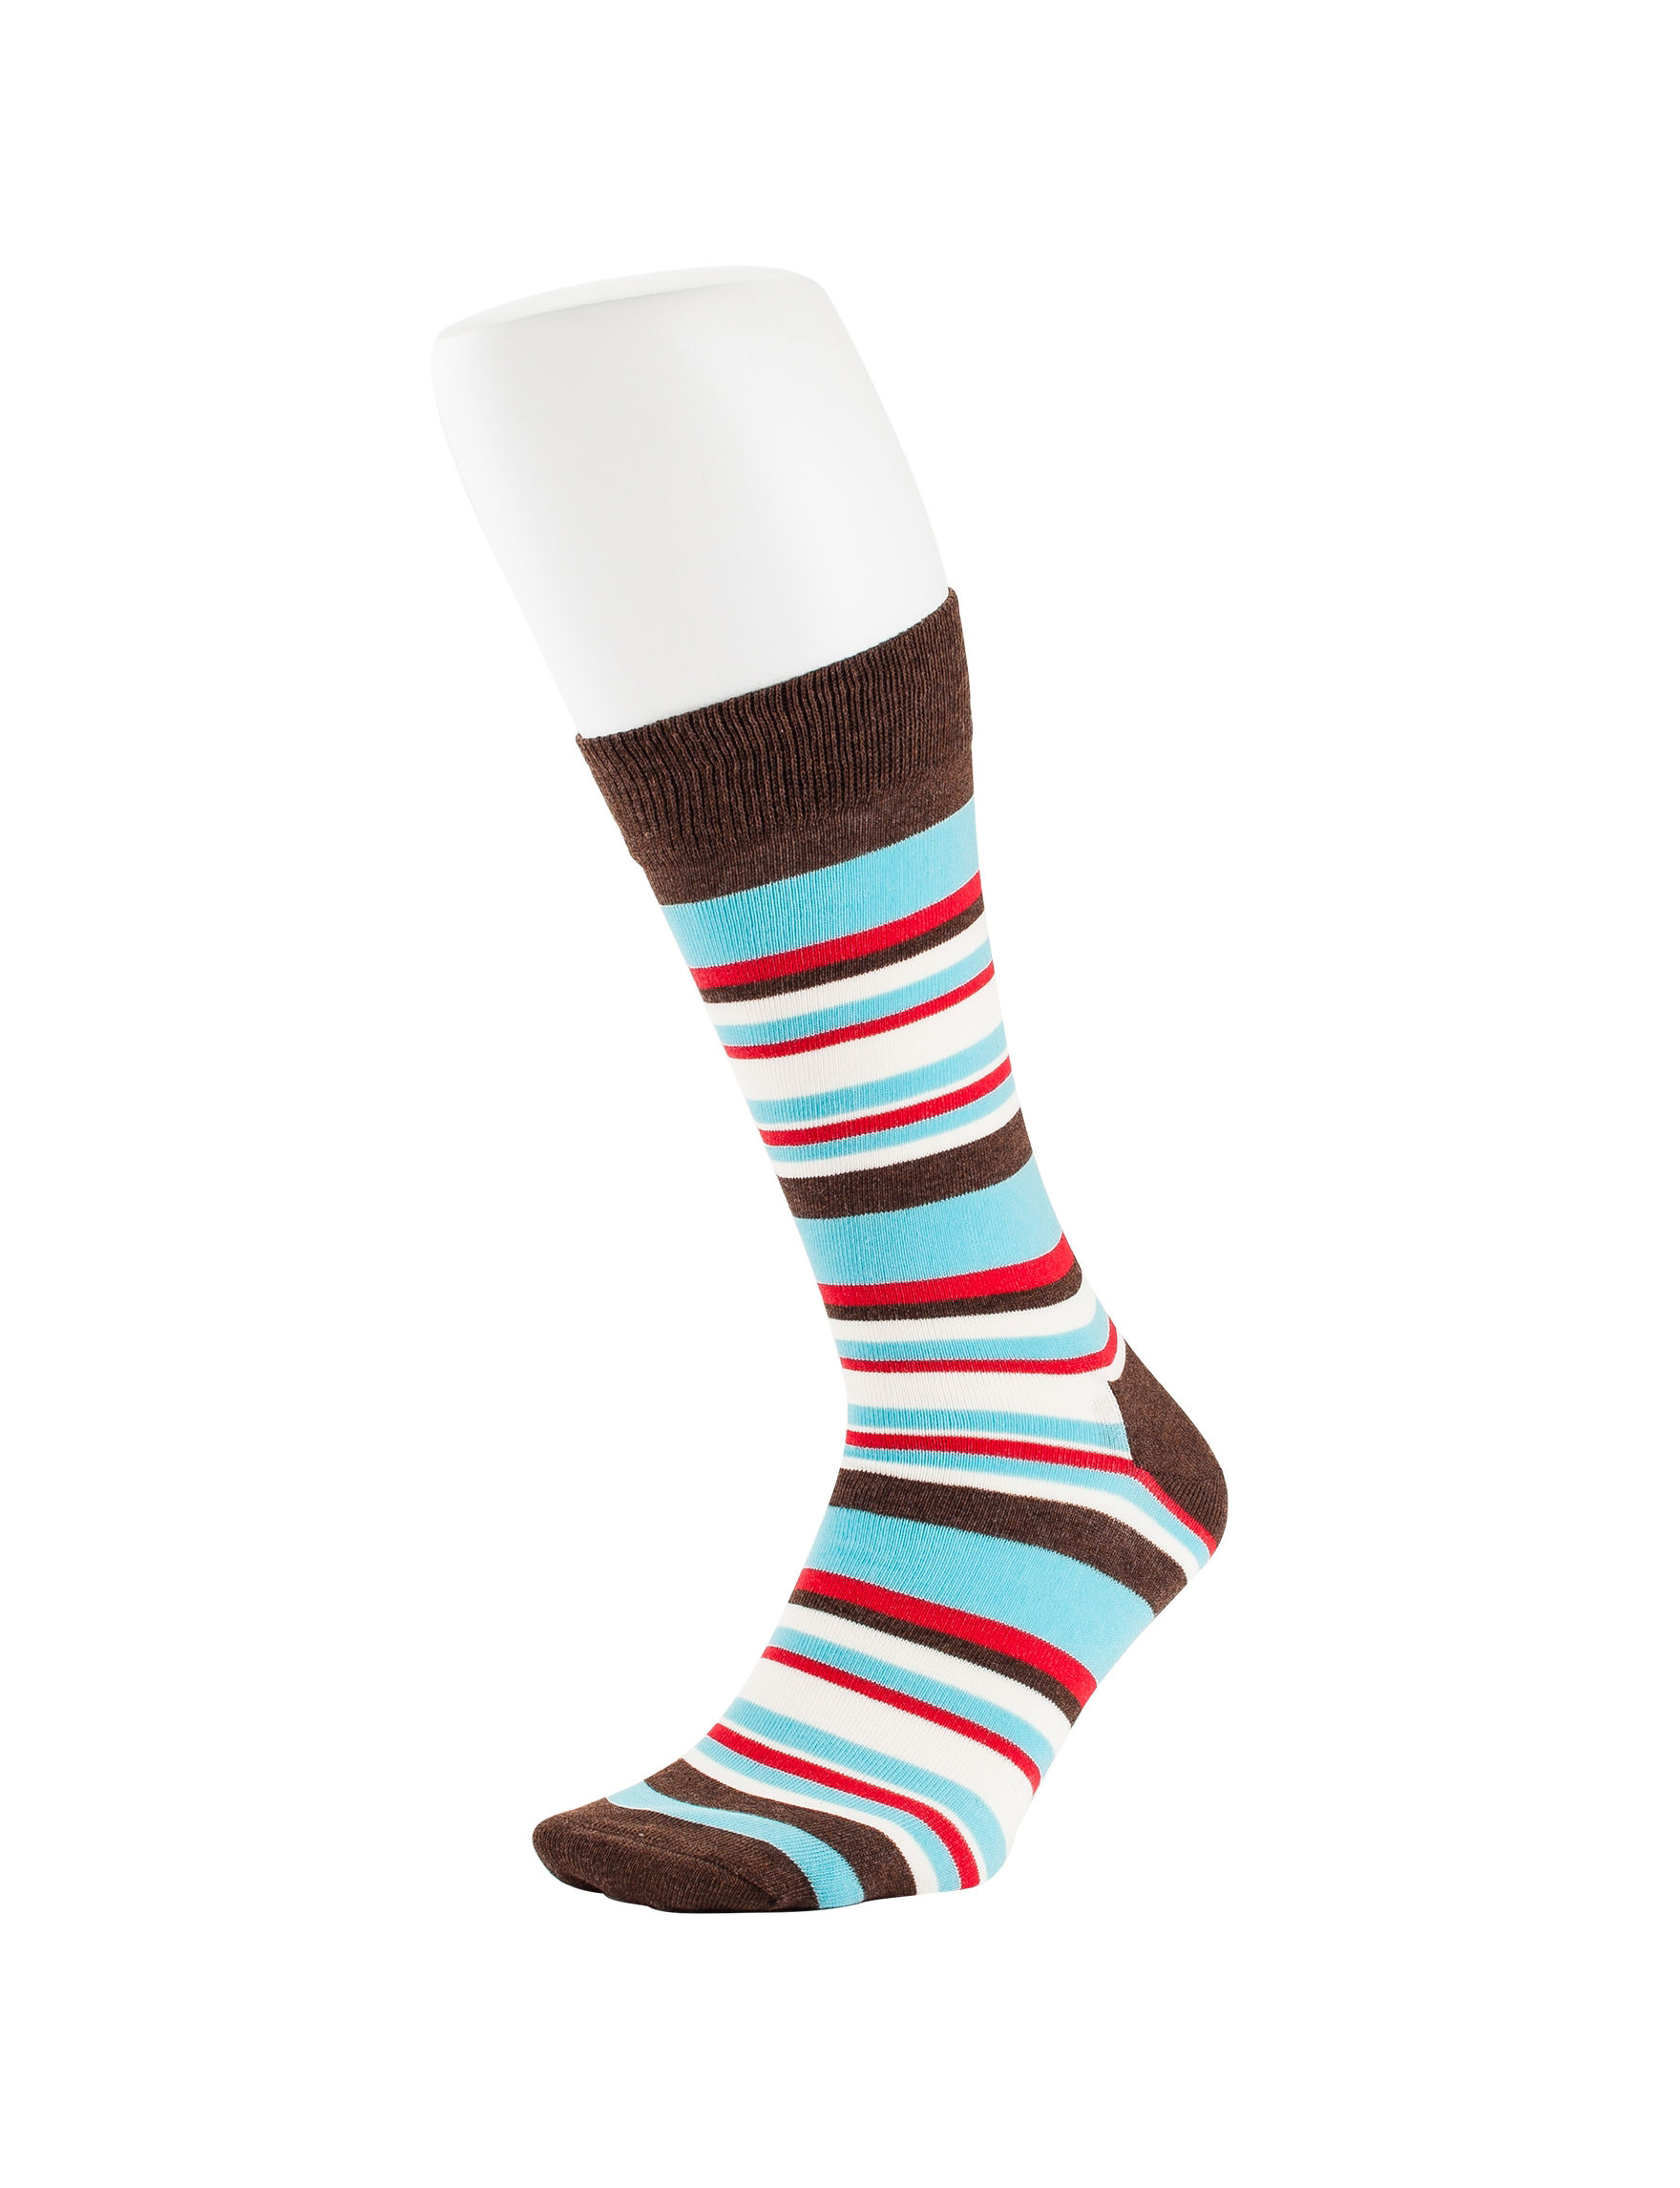 HS by Happy Socks Brown Socks